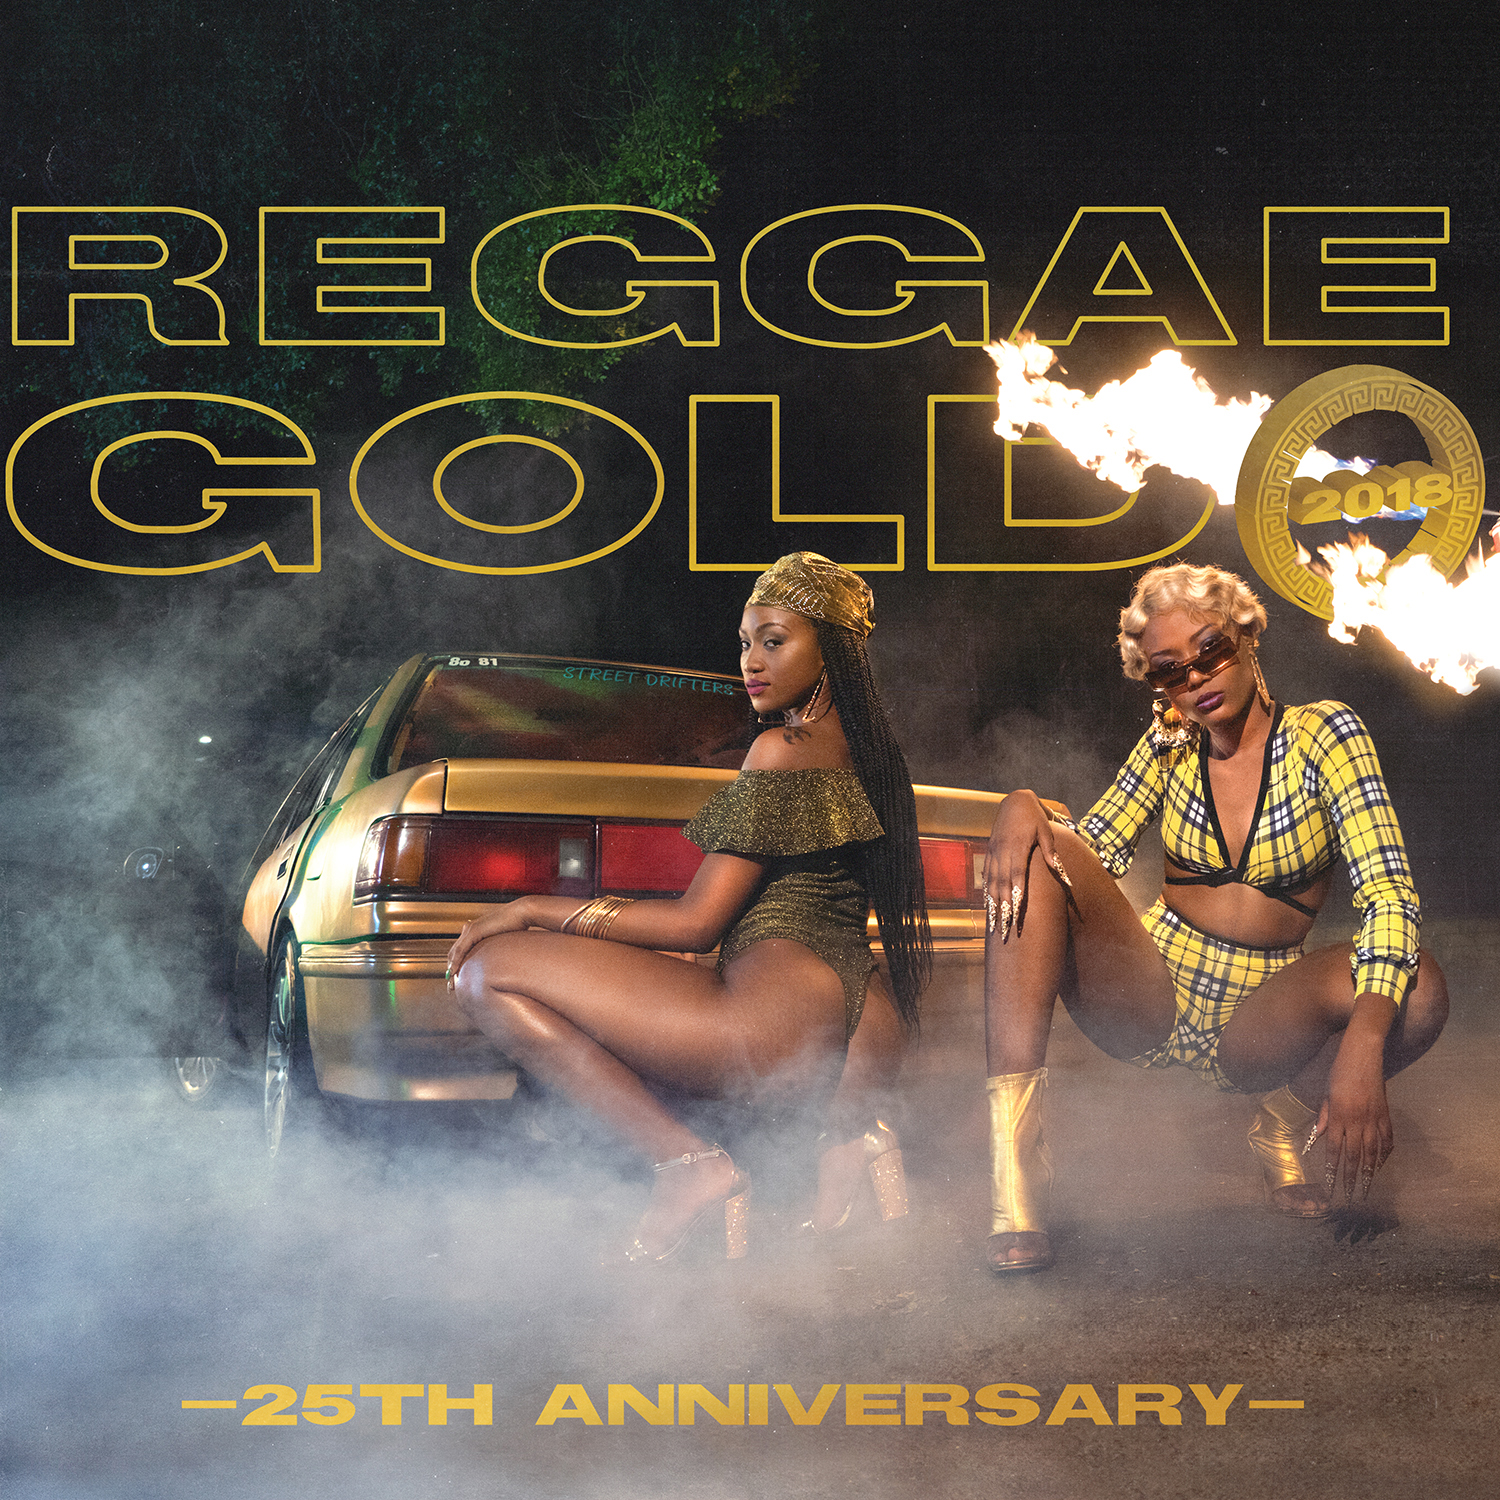 25th anniversary of reggae gold 2018 out july 27th dancehall tracks and